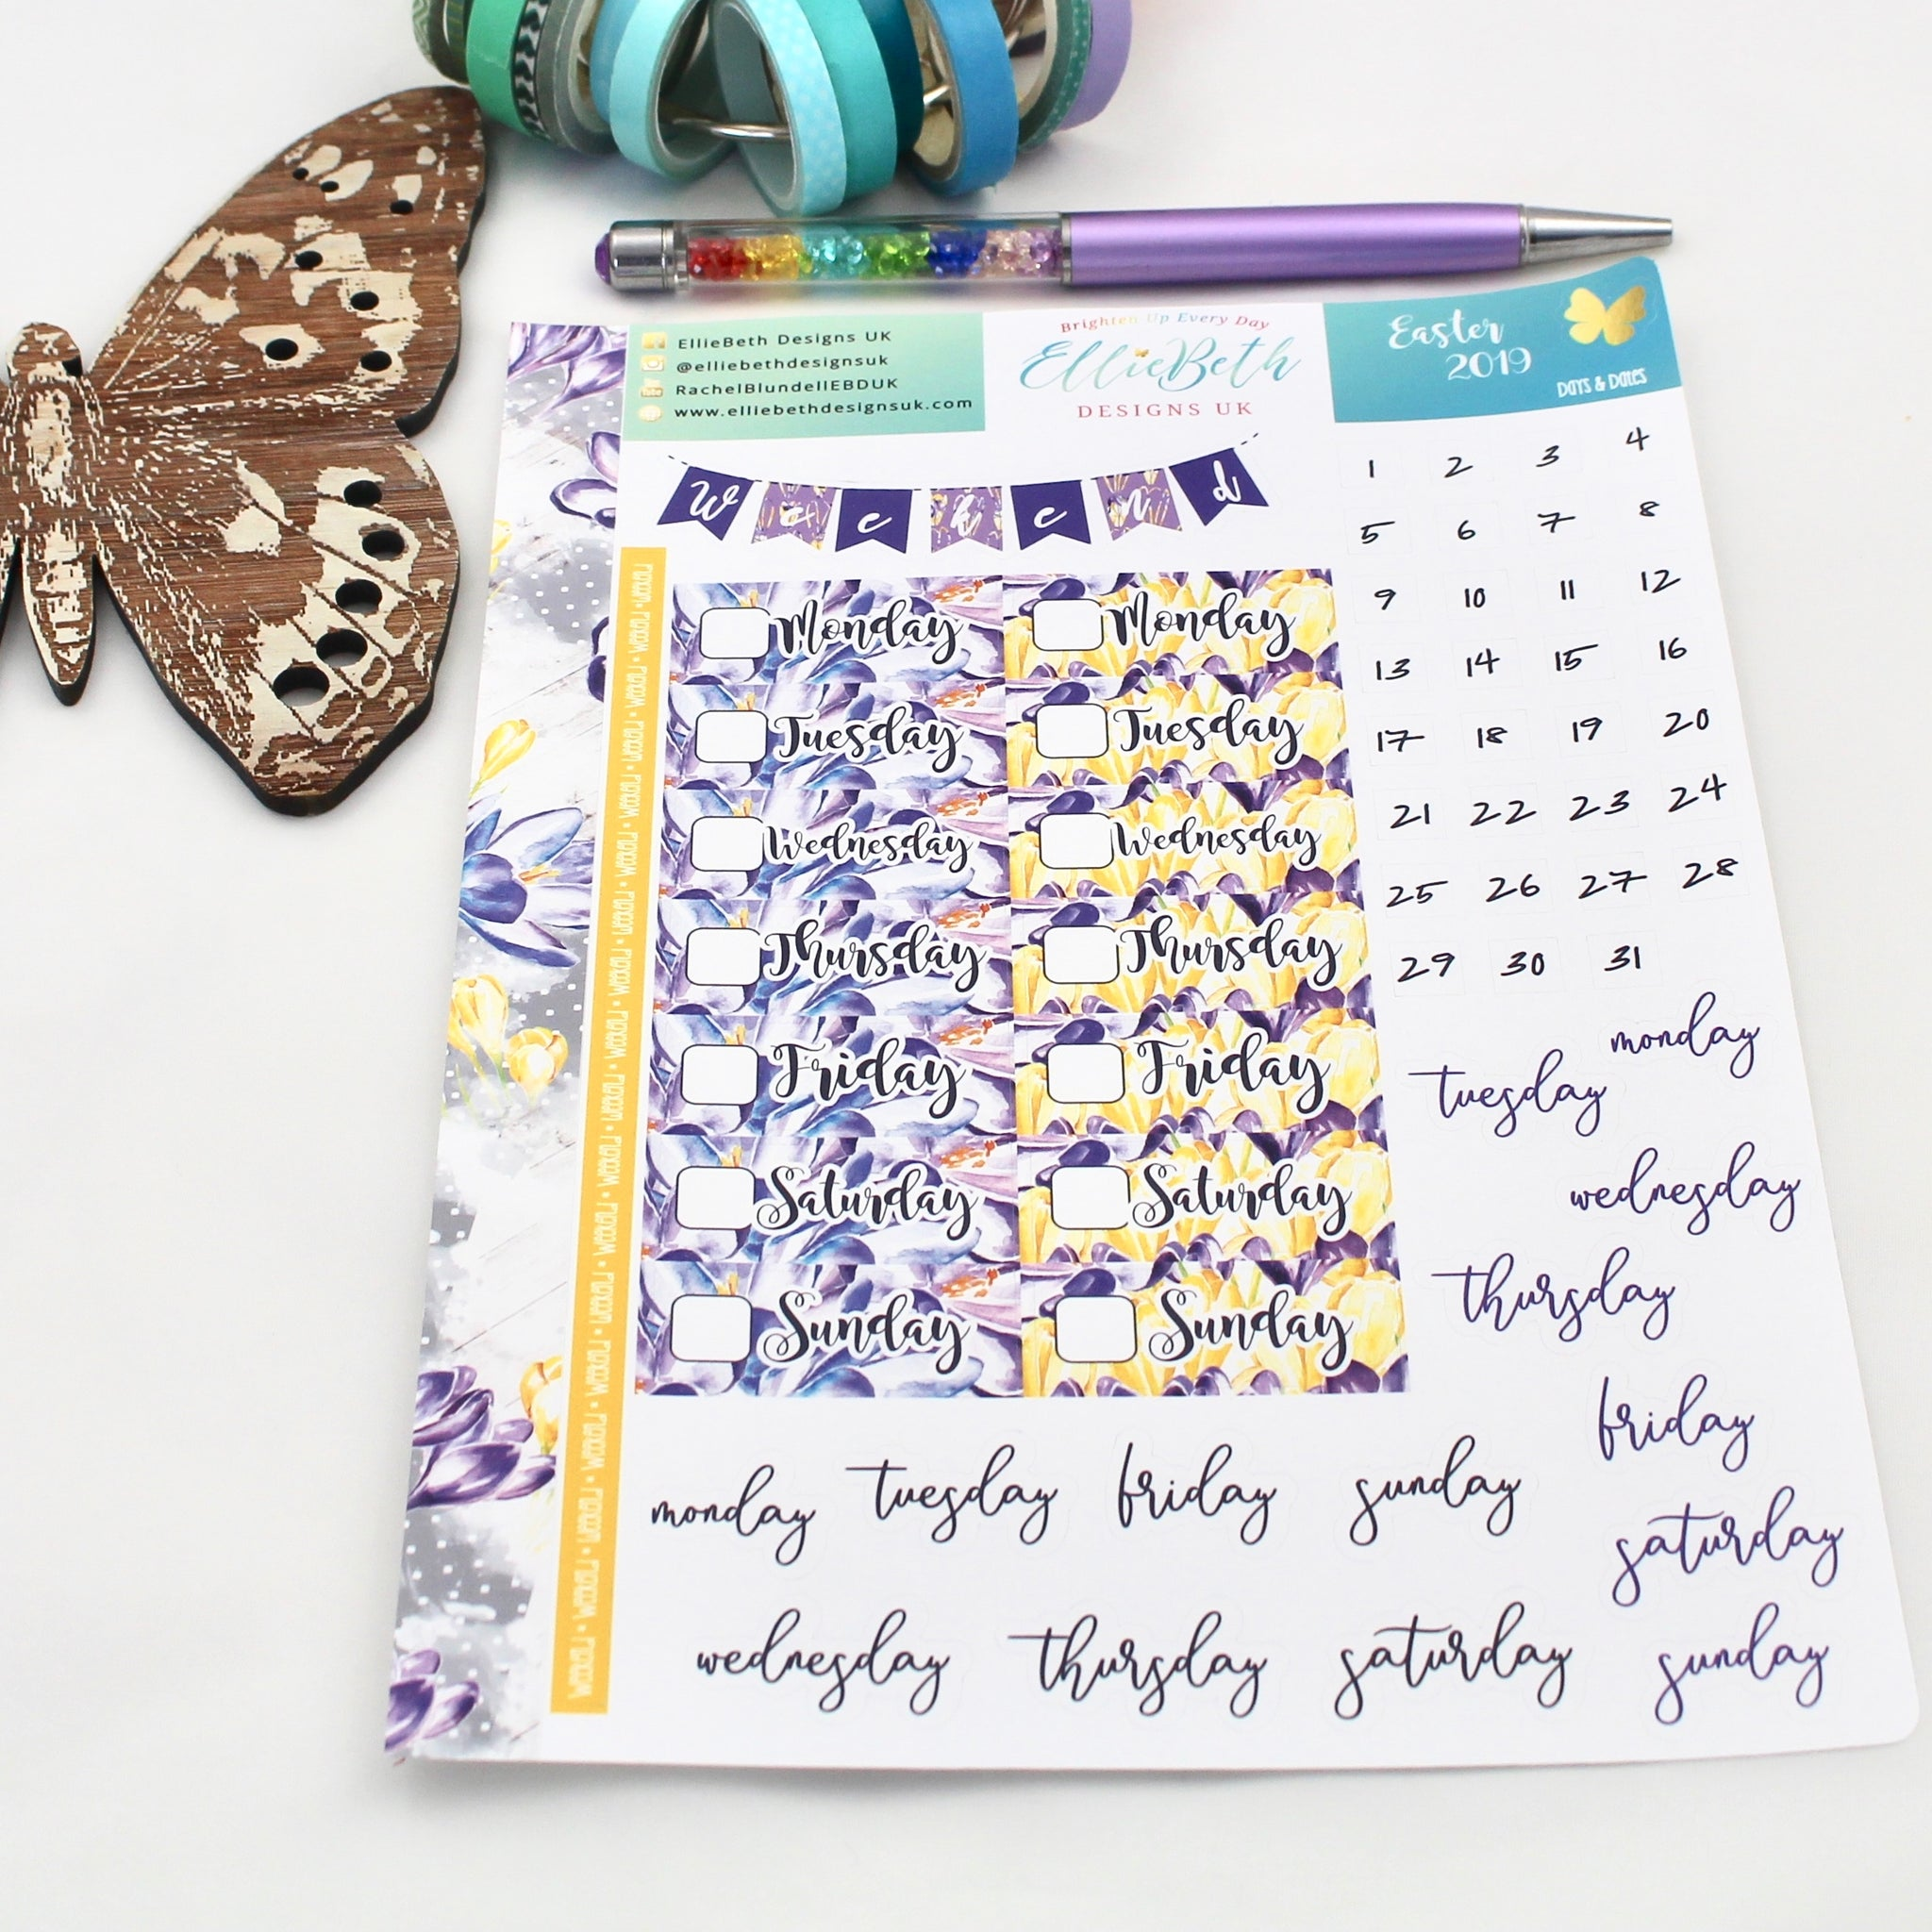 Easter 2019 - Days and Dates - A5 binder ready planner stickers